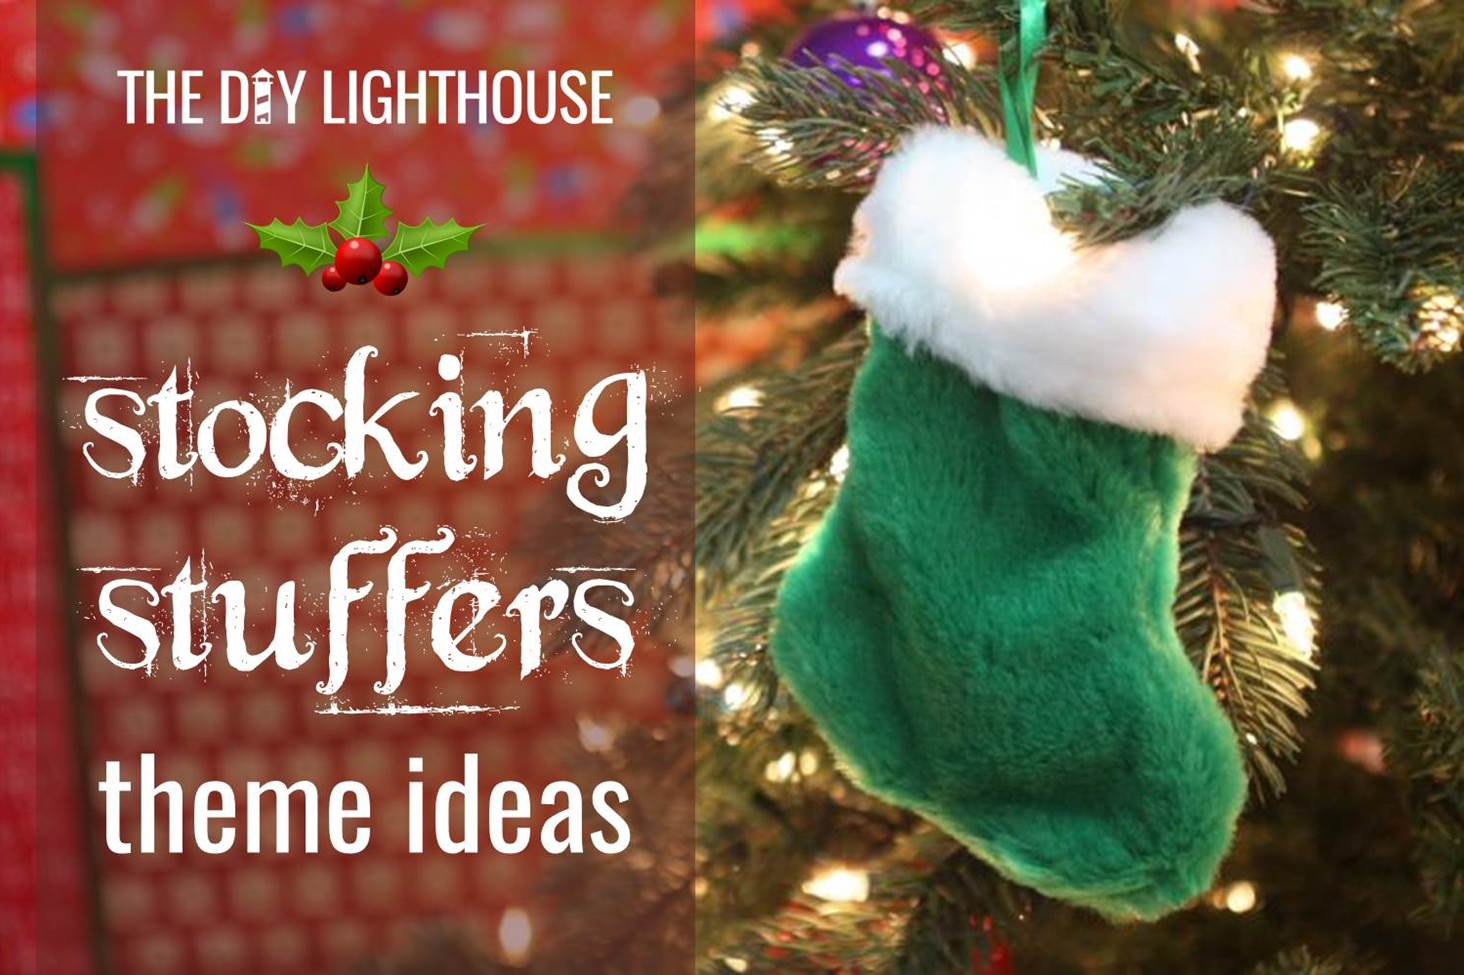 9 stocking stuffer theme ideas for everyone the diy for Christmas stocking stuffers ideas for everyone